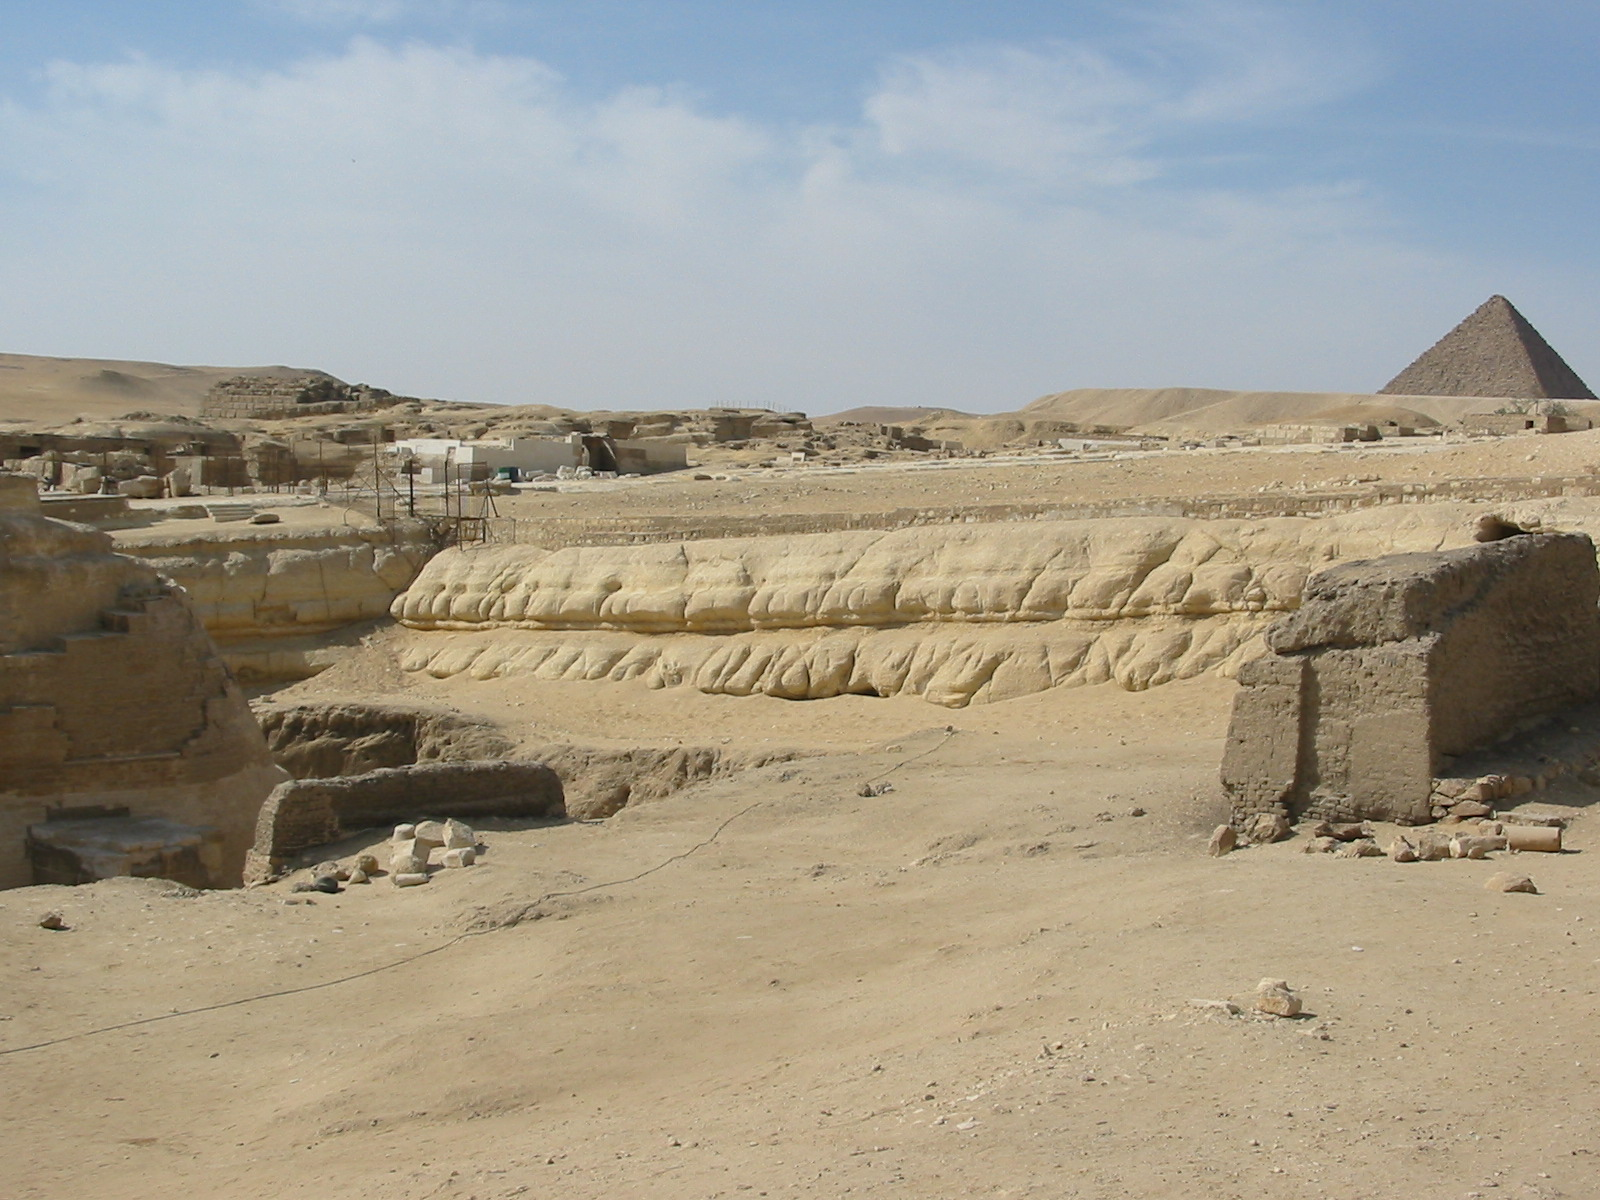 the western wall of the sphinx enclosure, showing erosion consistently along its length